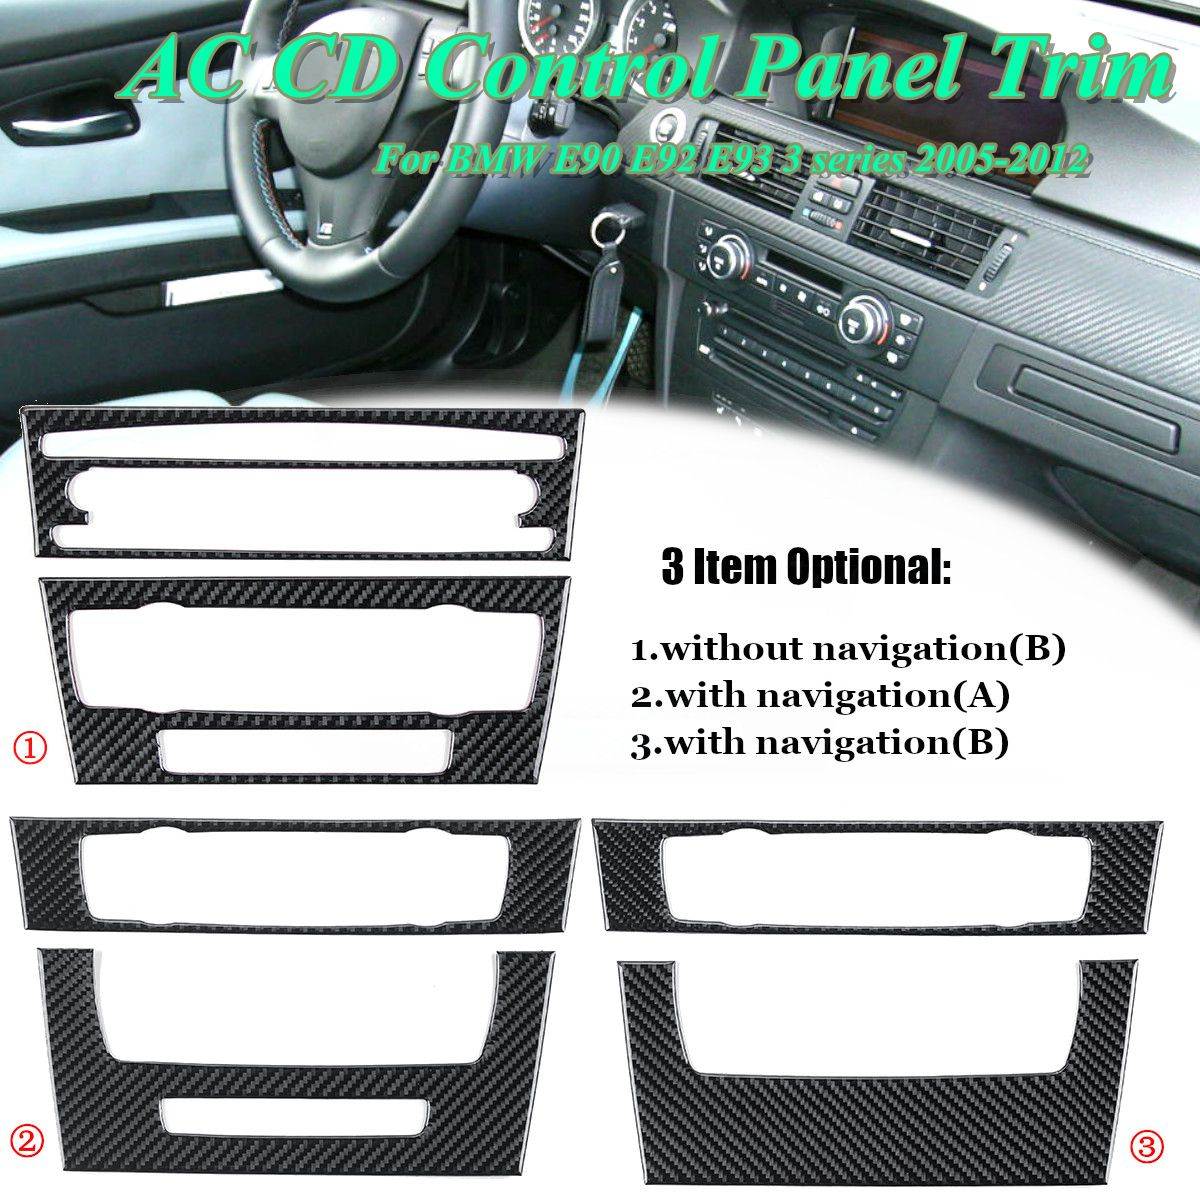 Car Air Conditioning CD Control Panel Trim Carbon Fiber Decoration for BMW E90 E92 E93 3 Series Interior Accessories Car styling car styling rear seat air conditioning vents decoration frame cover trim stickers accessories for bmw f30 3 series gt 320i 328i